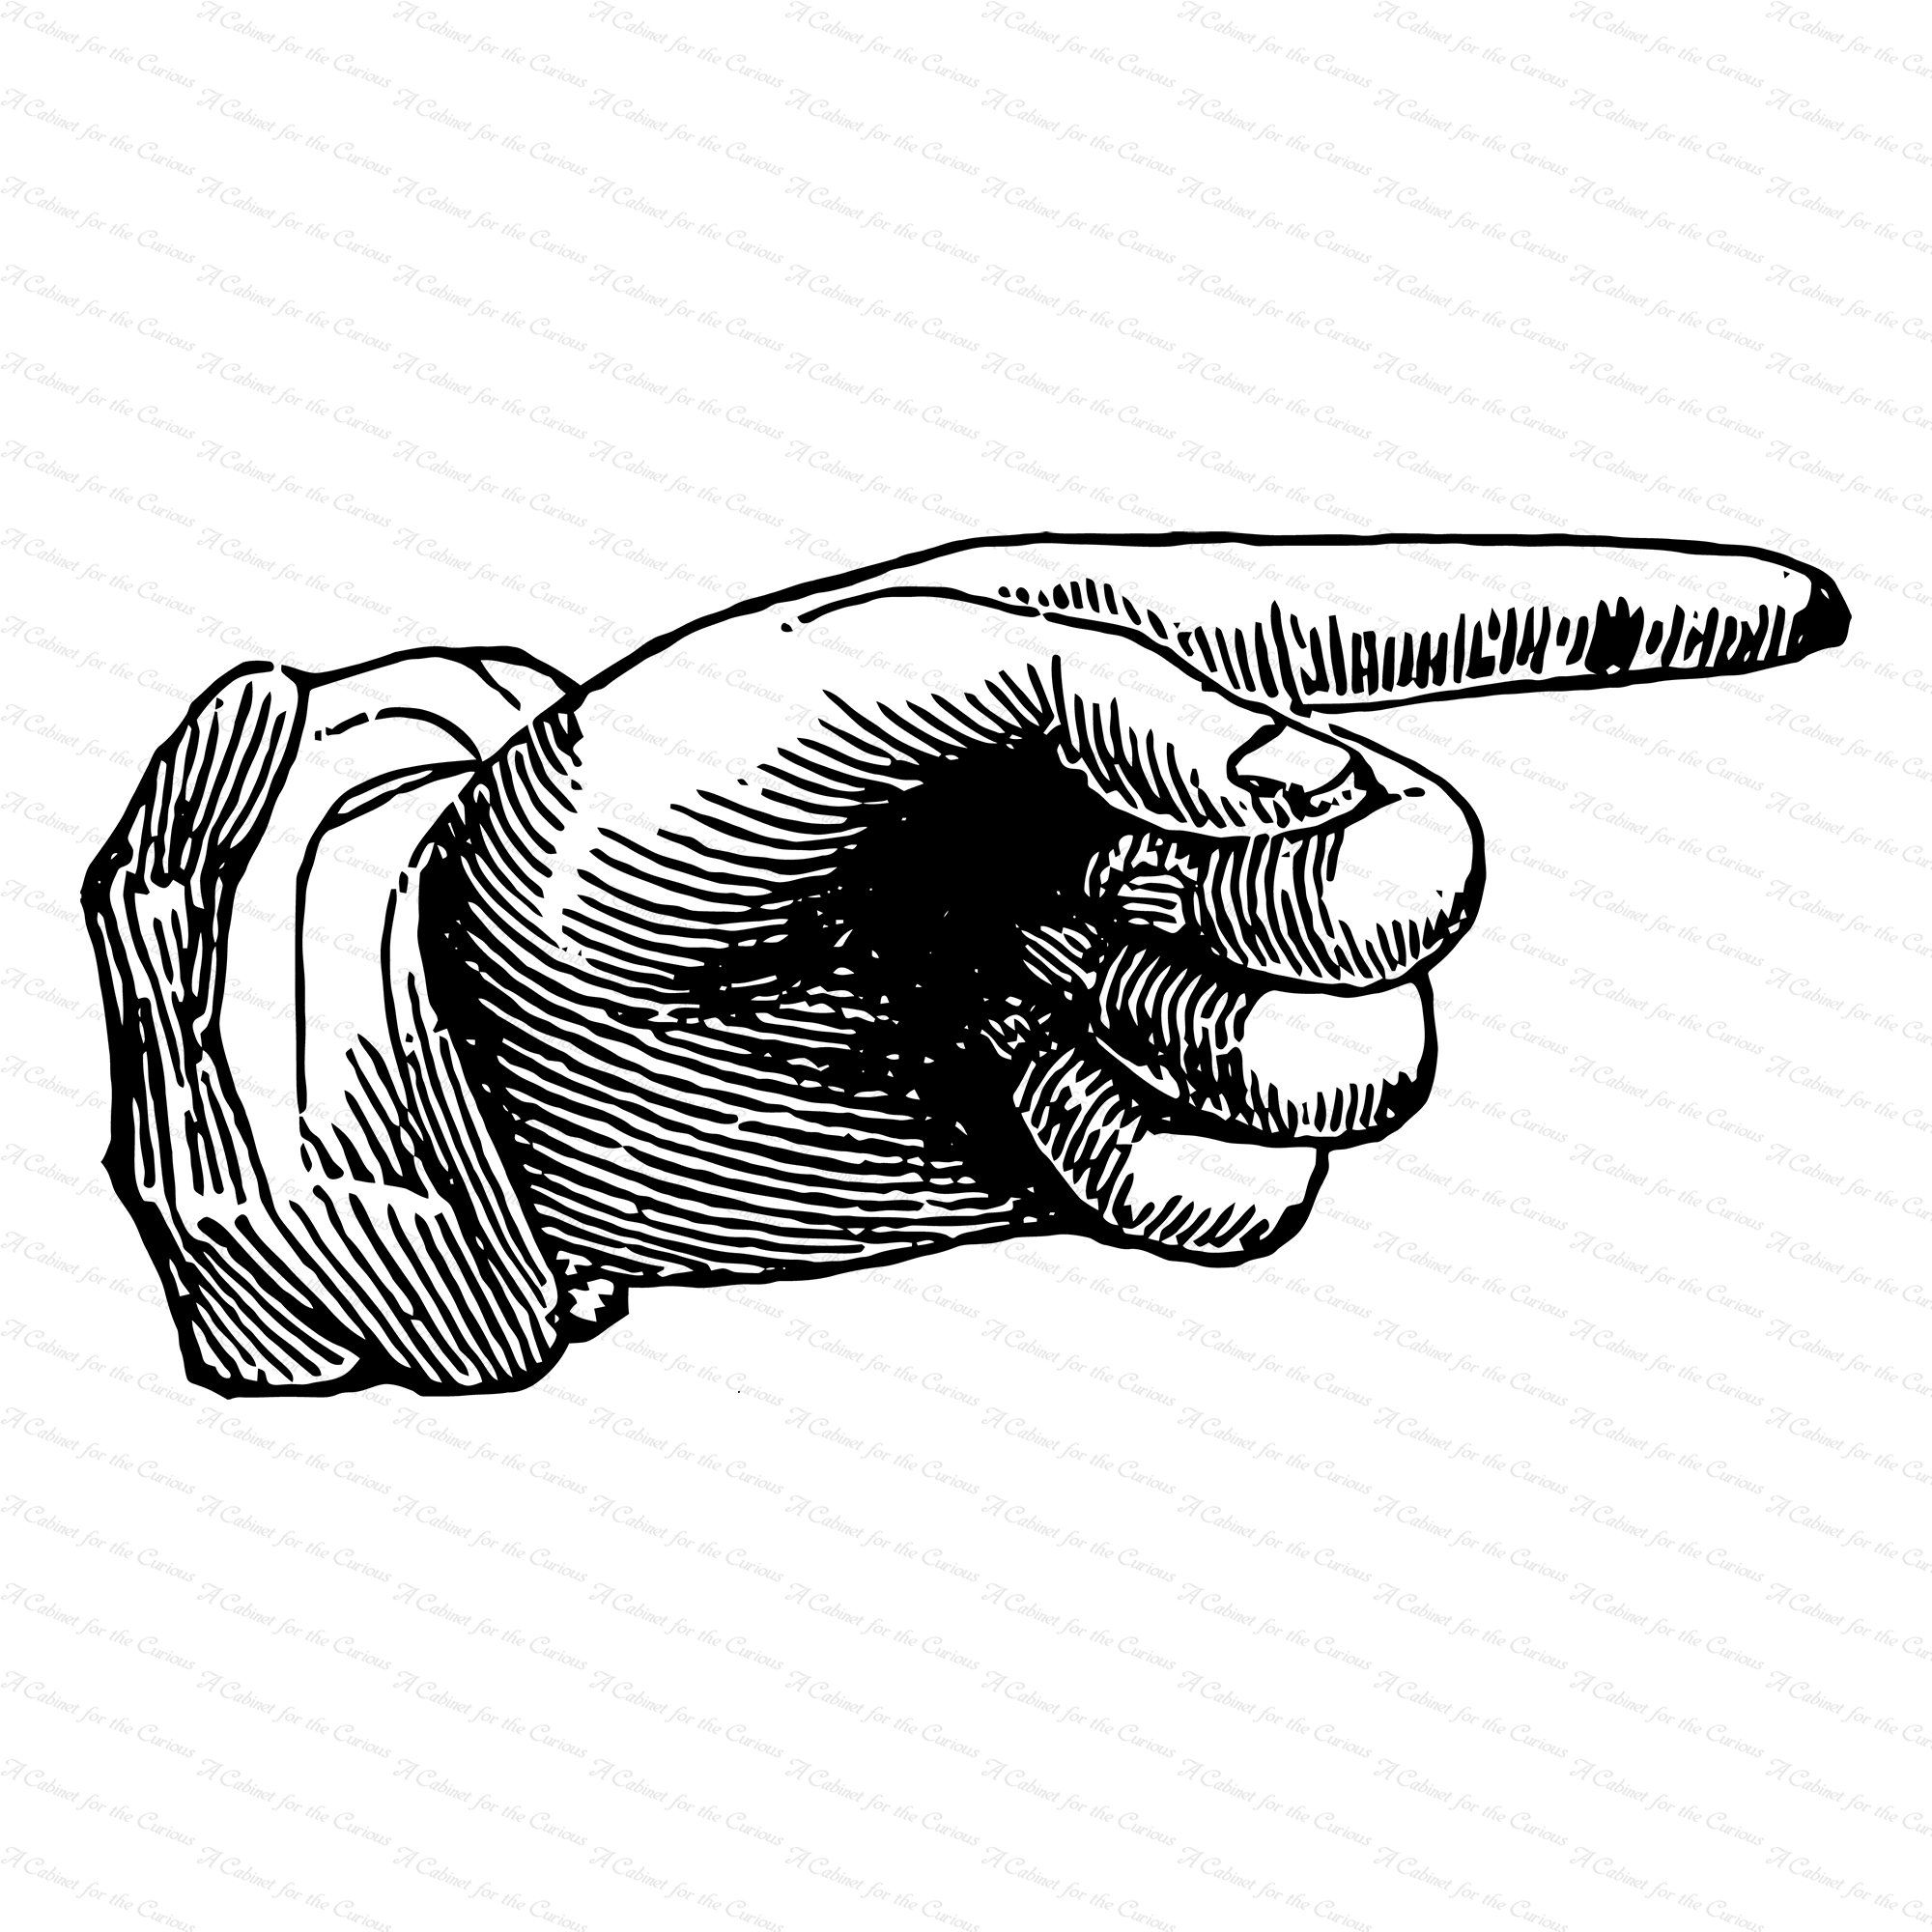 Cartoon Hand Pointing Finger Cartoon Clipart Cartoon Hand Direction Png Transparent Clipart Image And Psd File For Free Download Pointing Hand Hand Drawing Reference Cartoon Clip Art